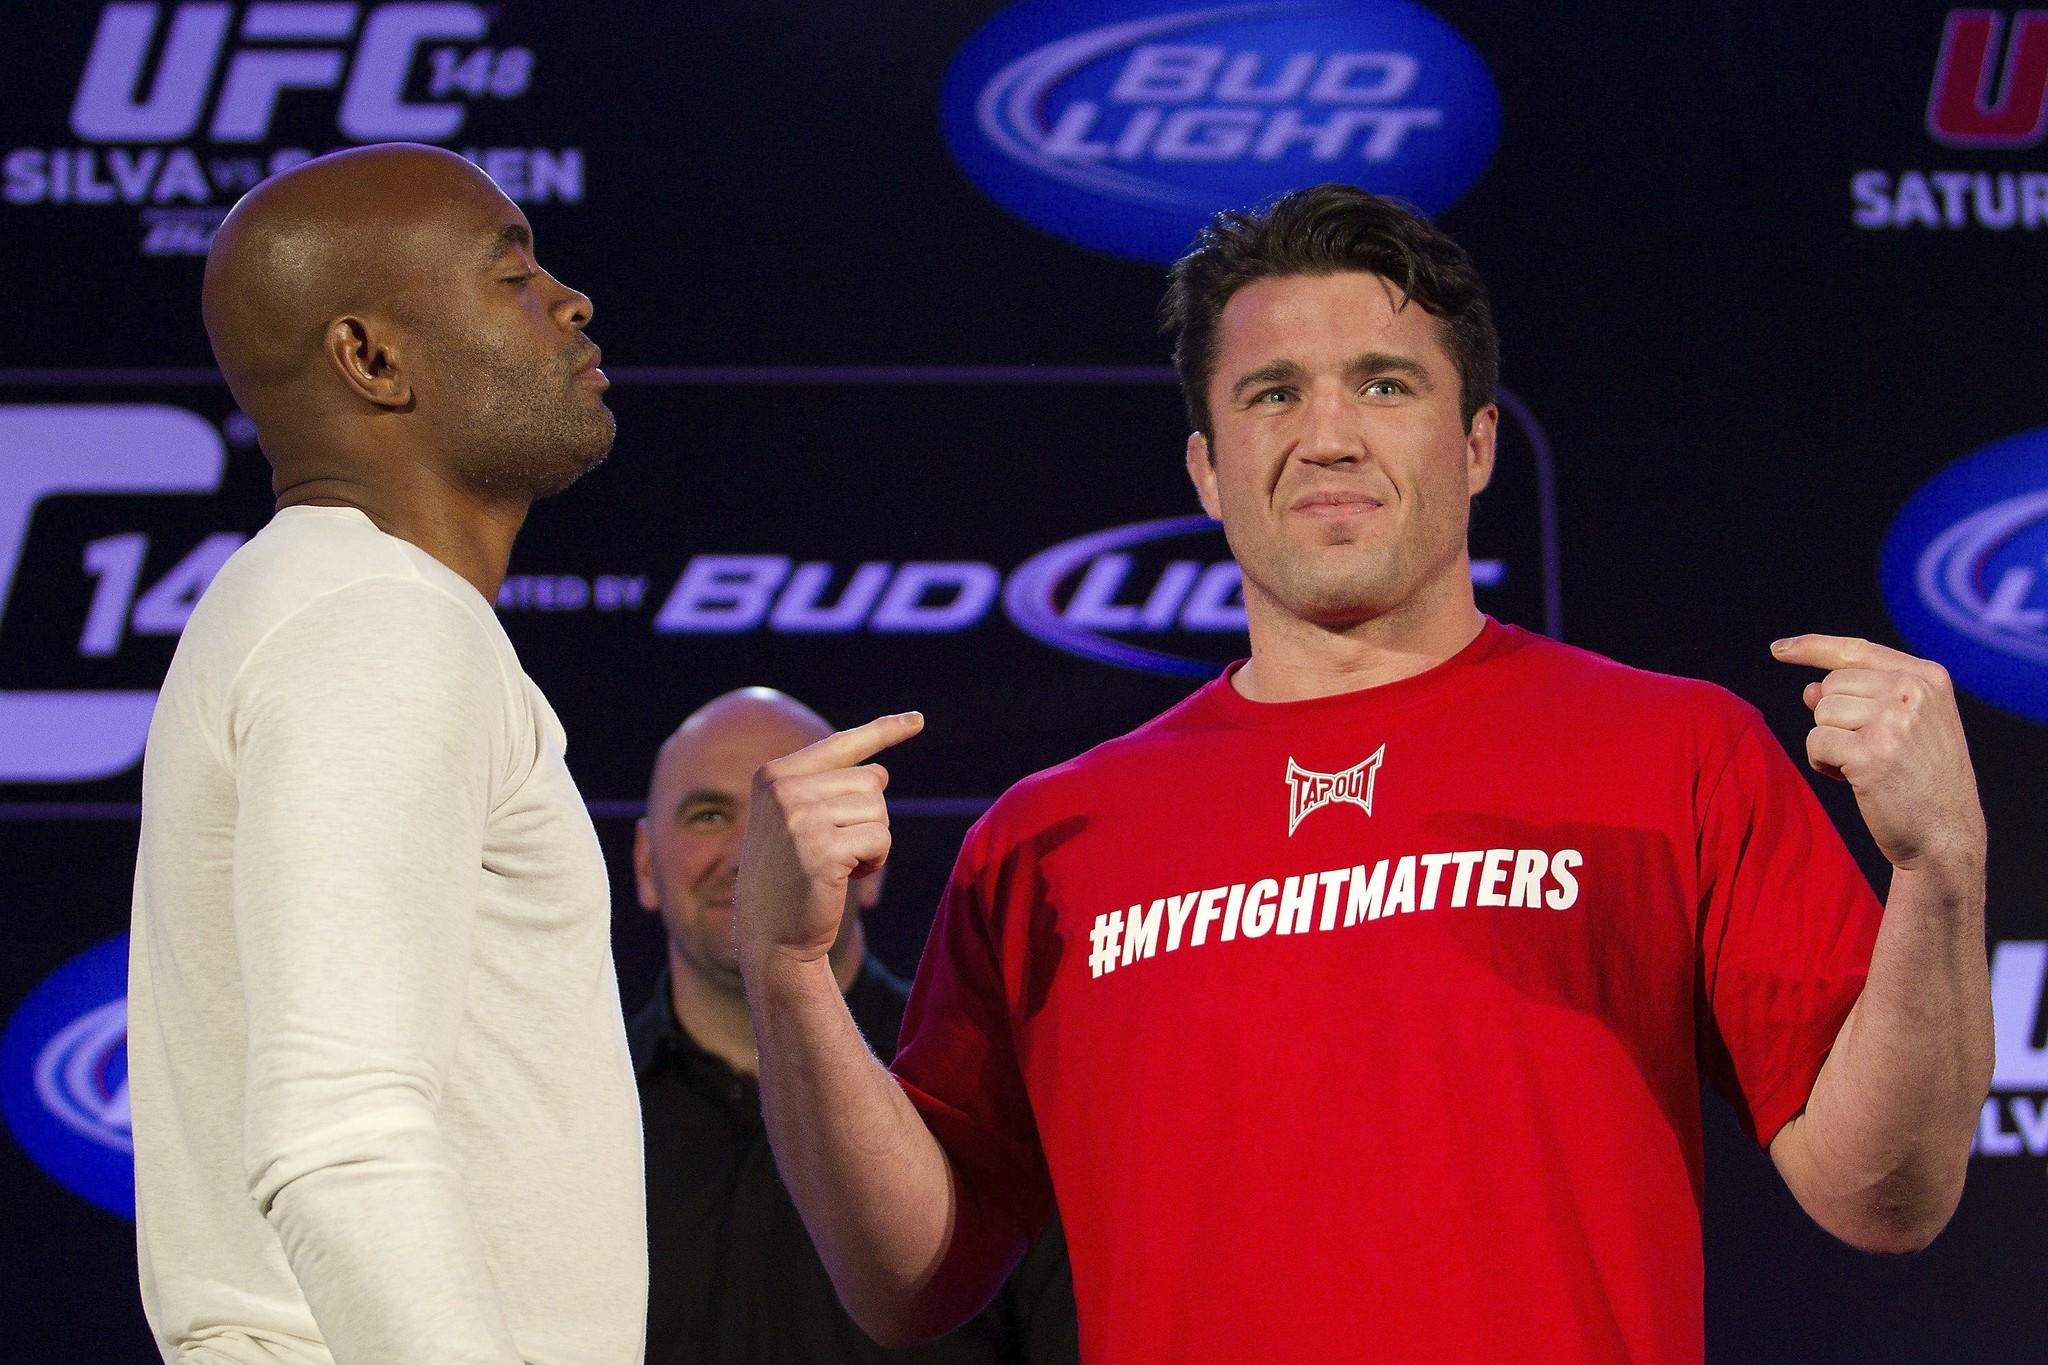 Chael Sonnen (right) with Anderson Silva before UFC 148.